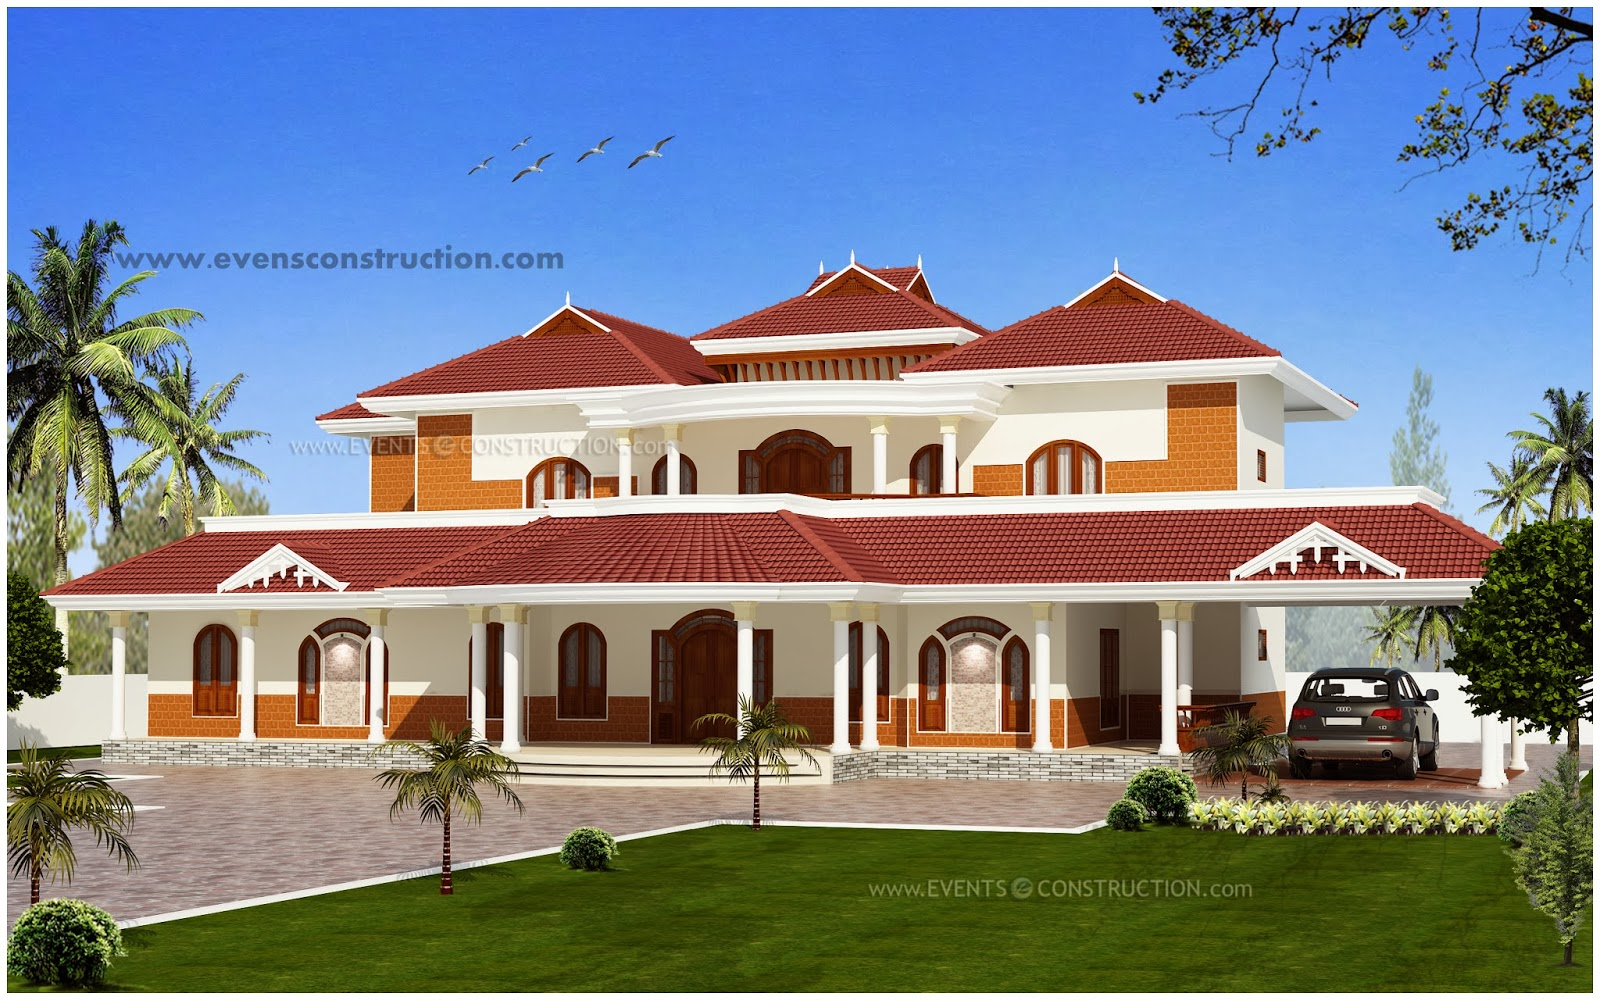 Kerala house models samples joy studio design gallery best design